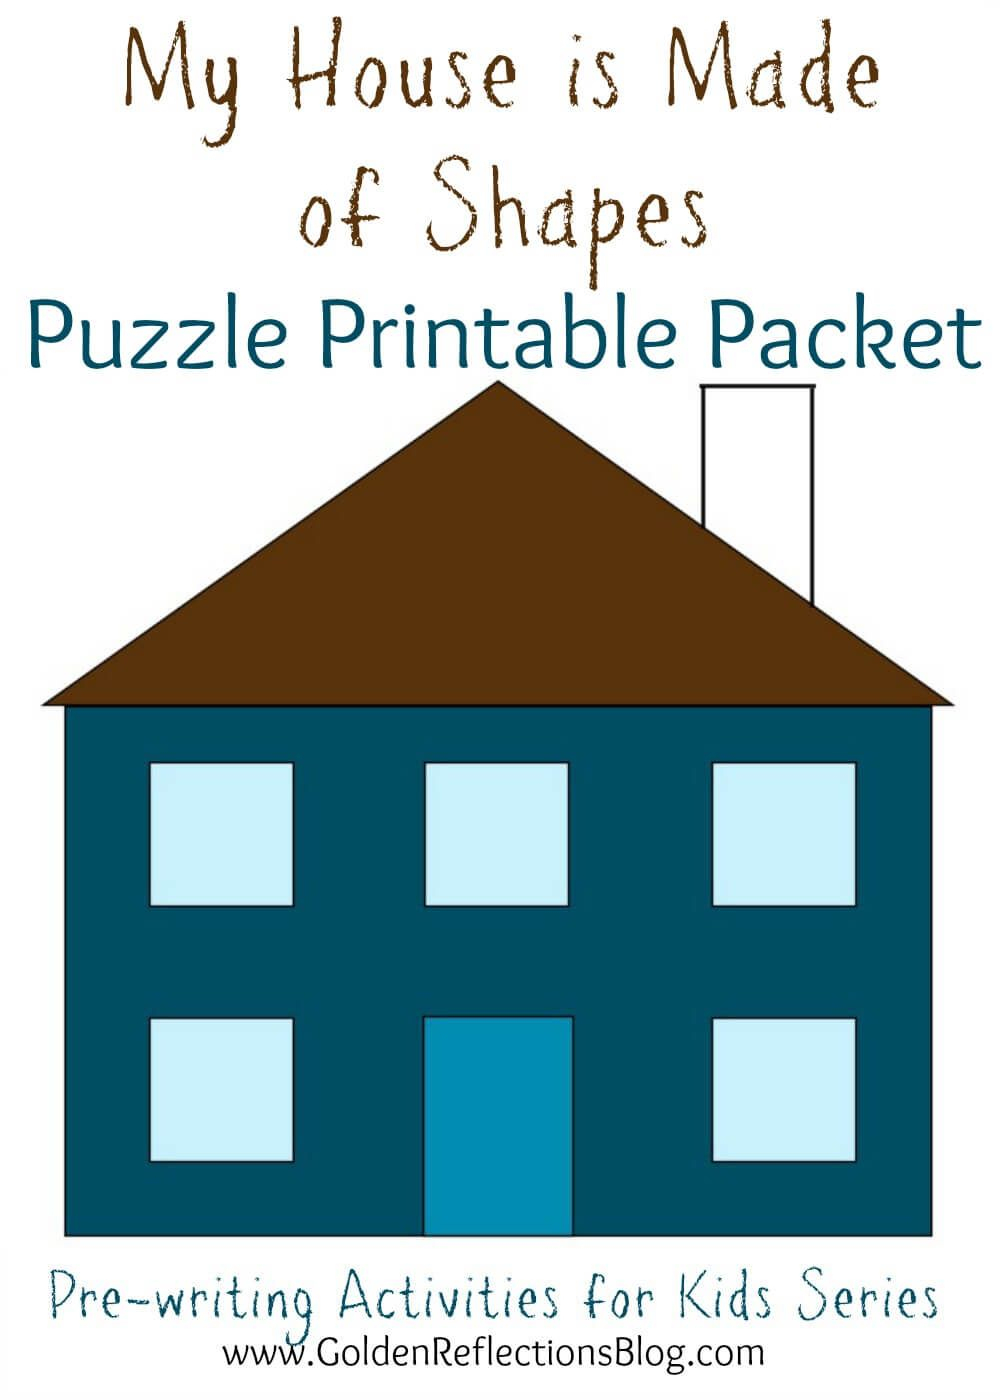 My House Is Made Of Shapes Puzzle Printable Packet: Pre-Writing - Printable House Puzzle